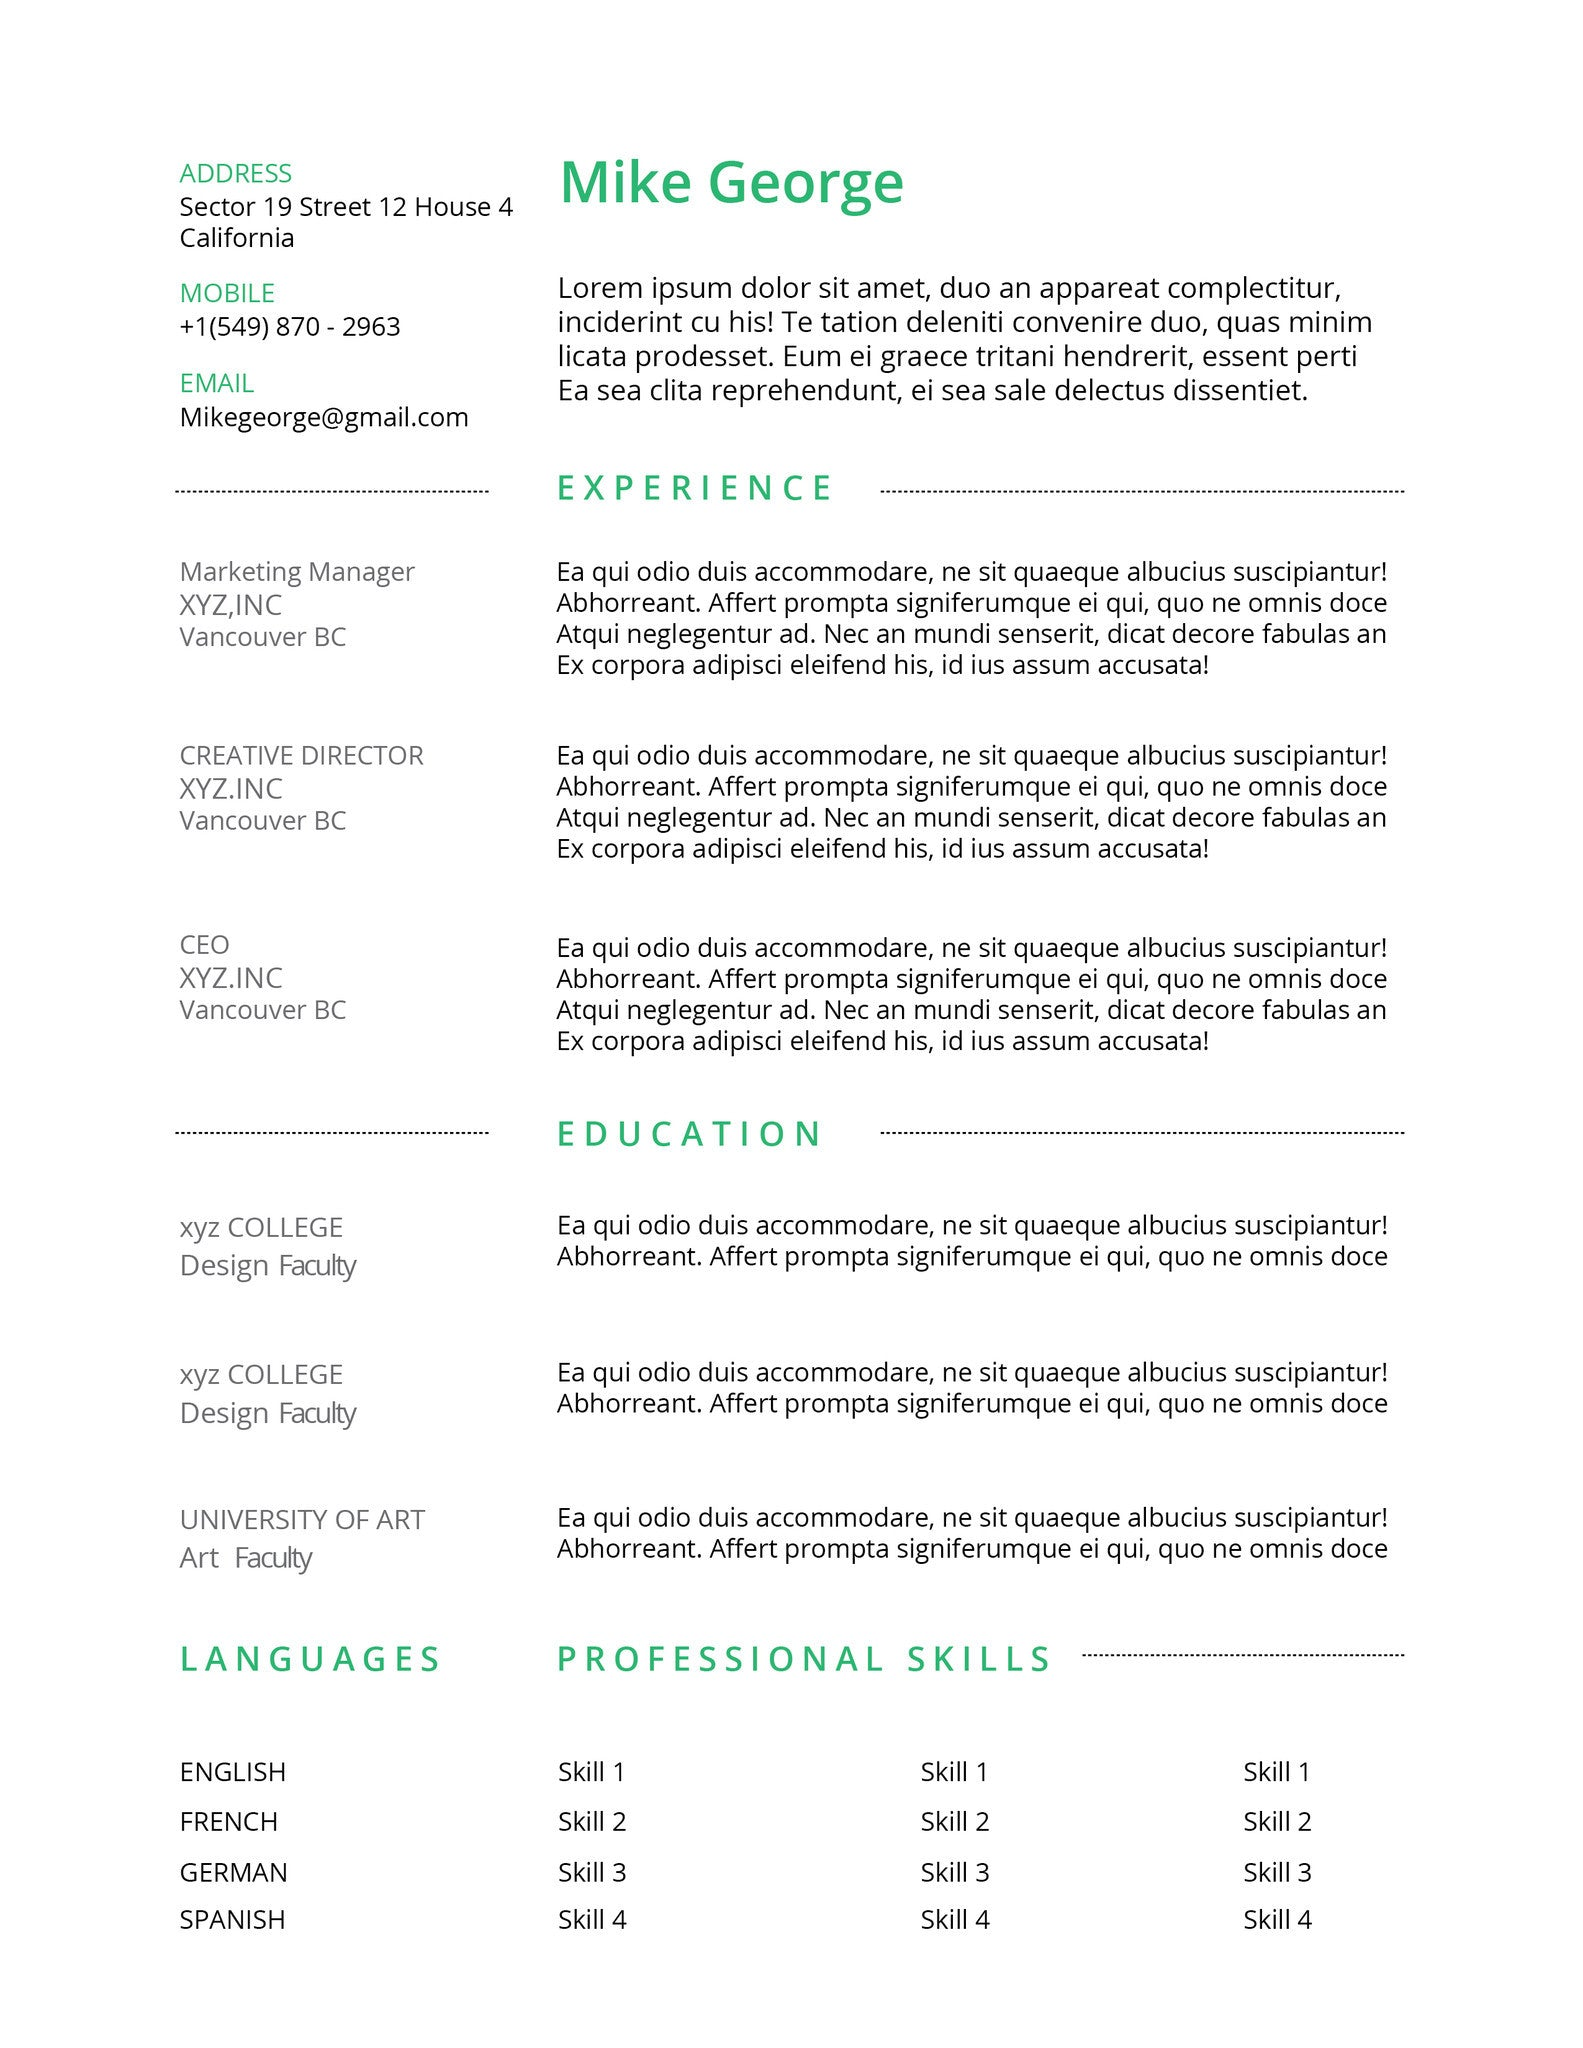 resume 011 resumes experts